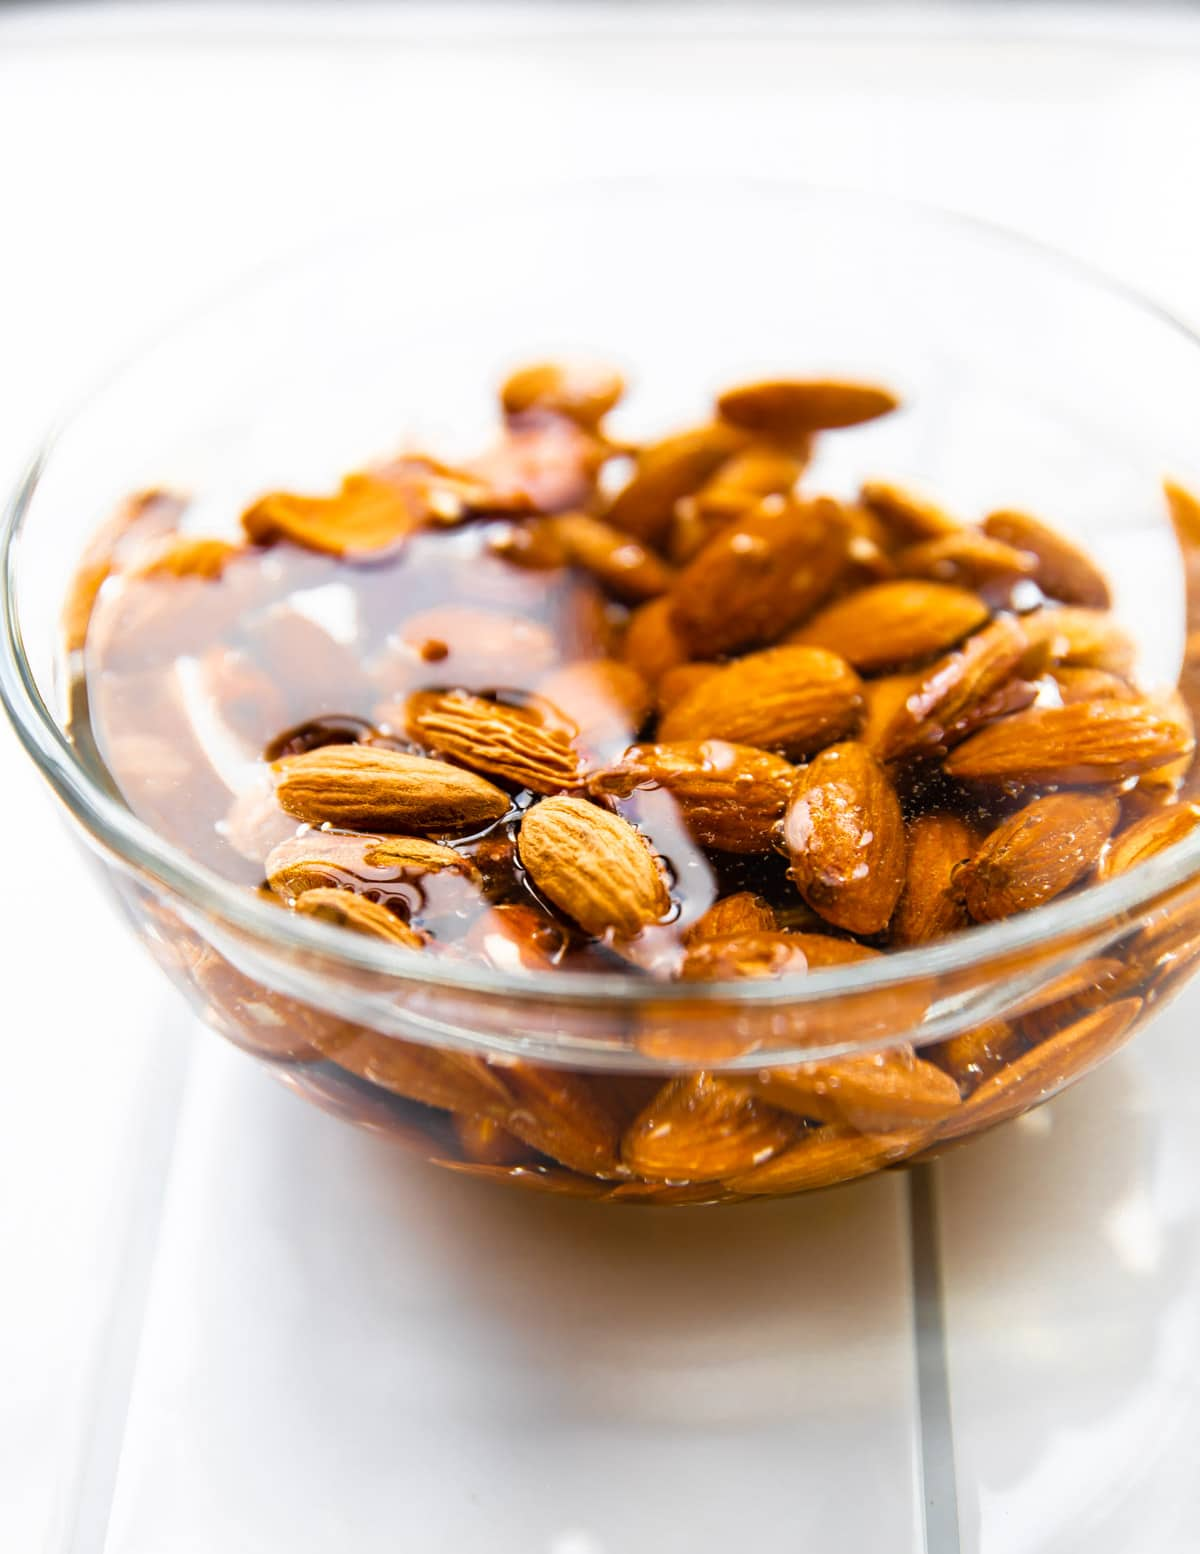 photo shows how to make nut milk by soaking almonds in water